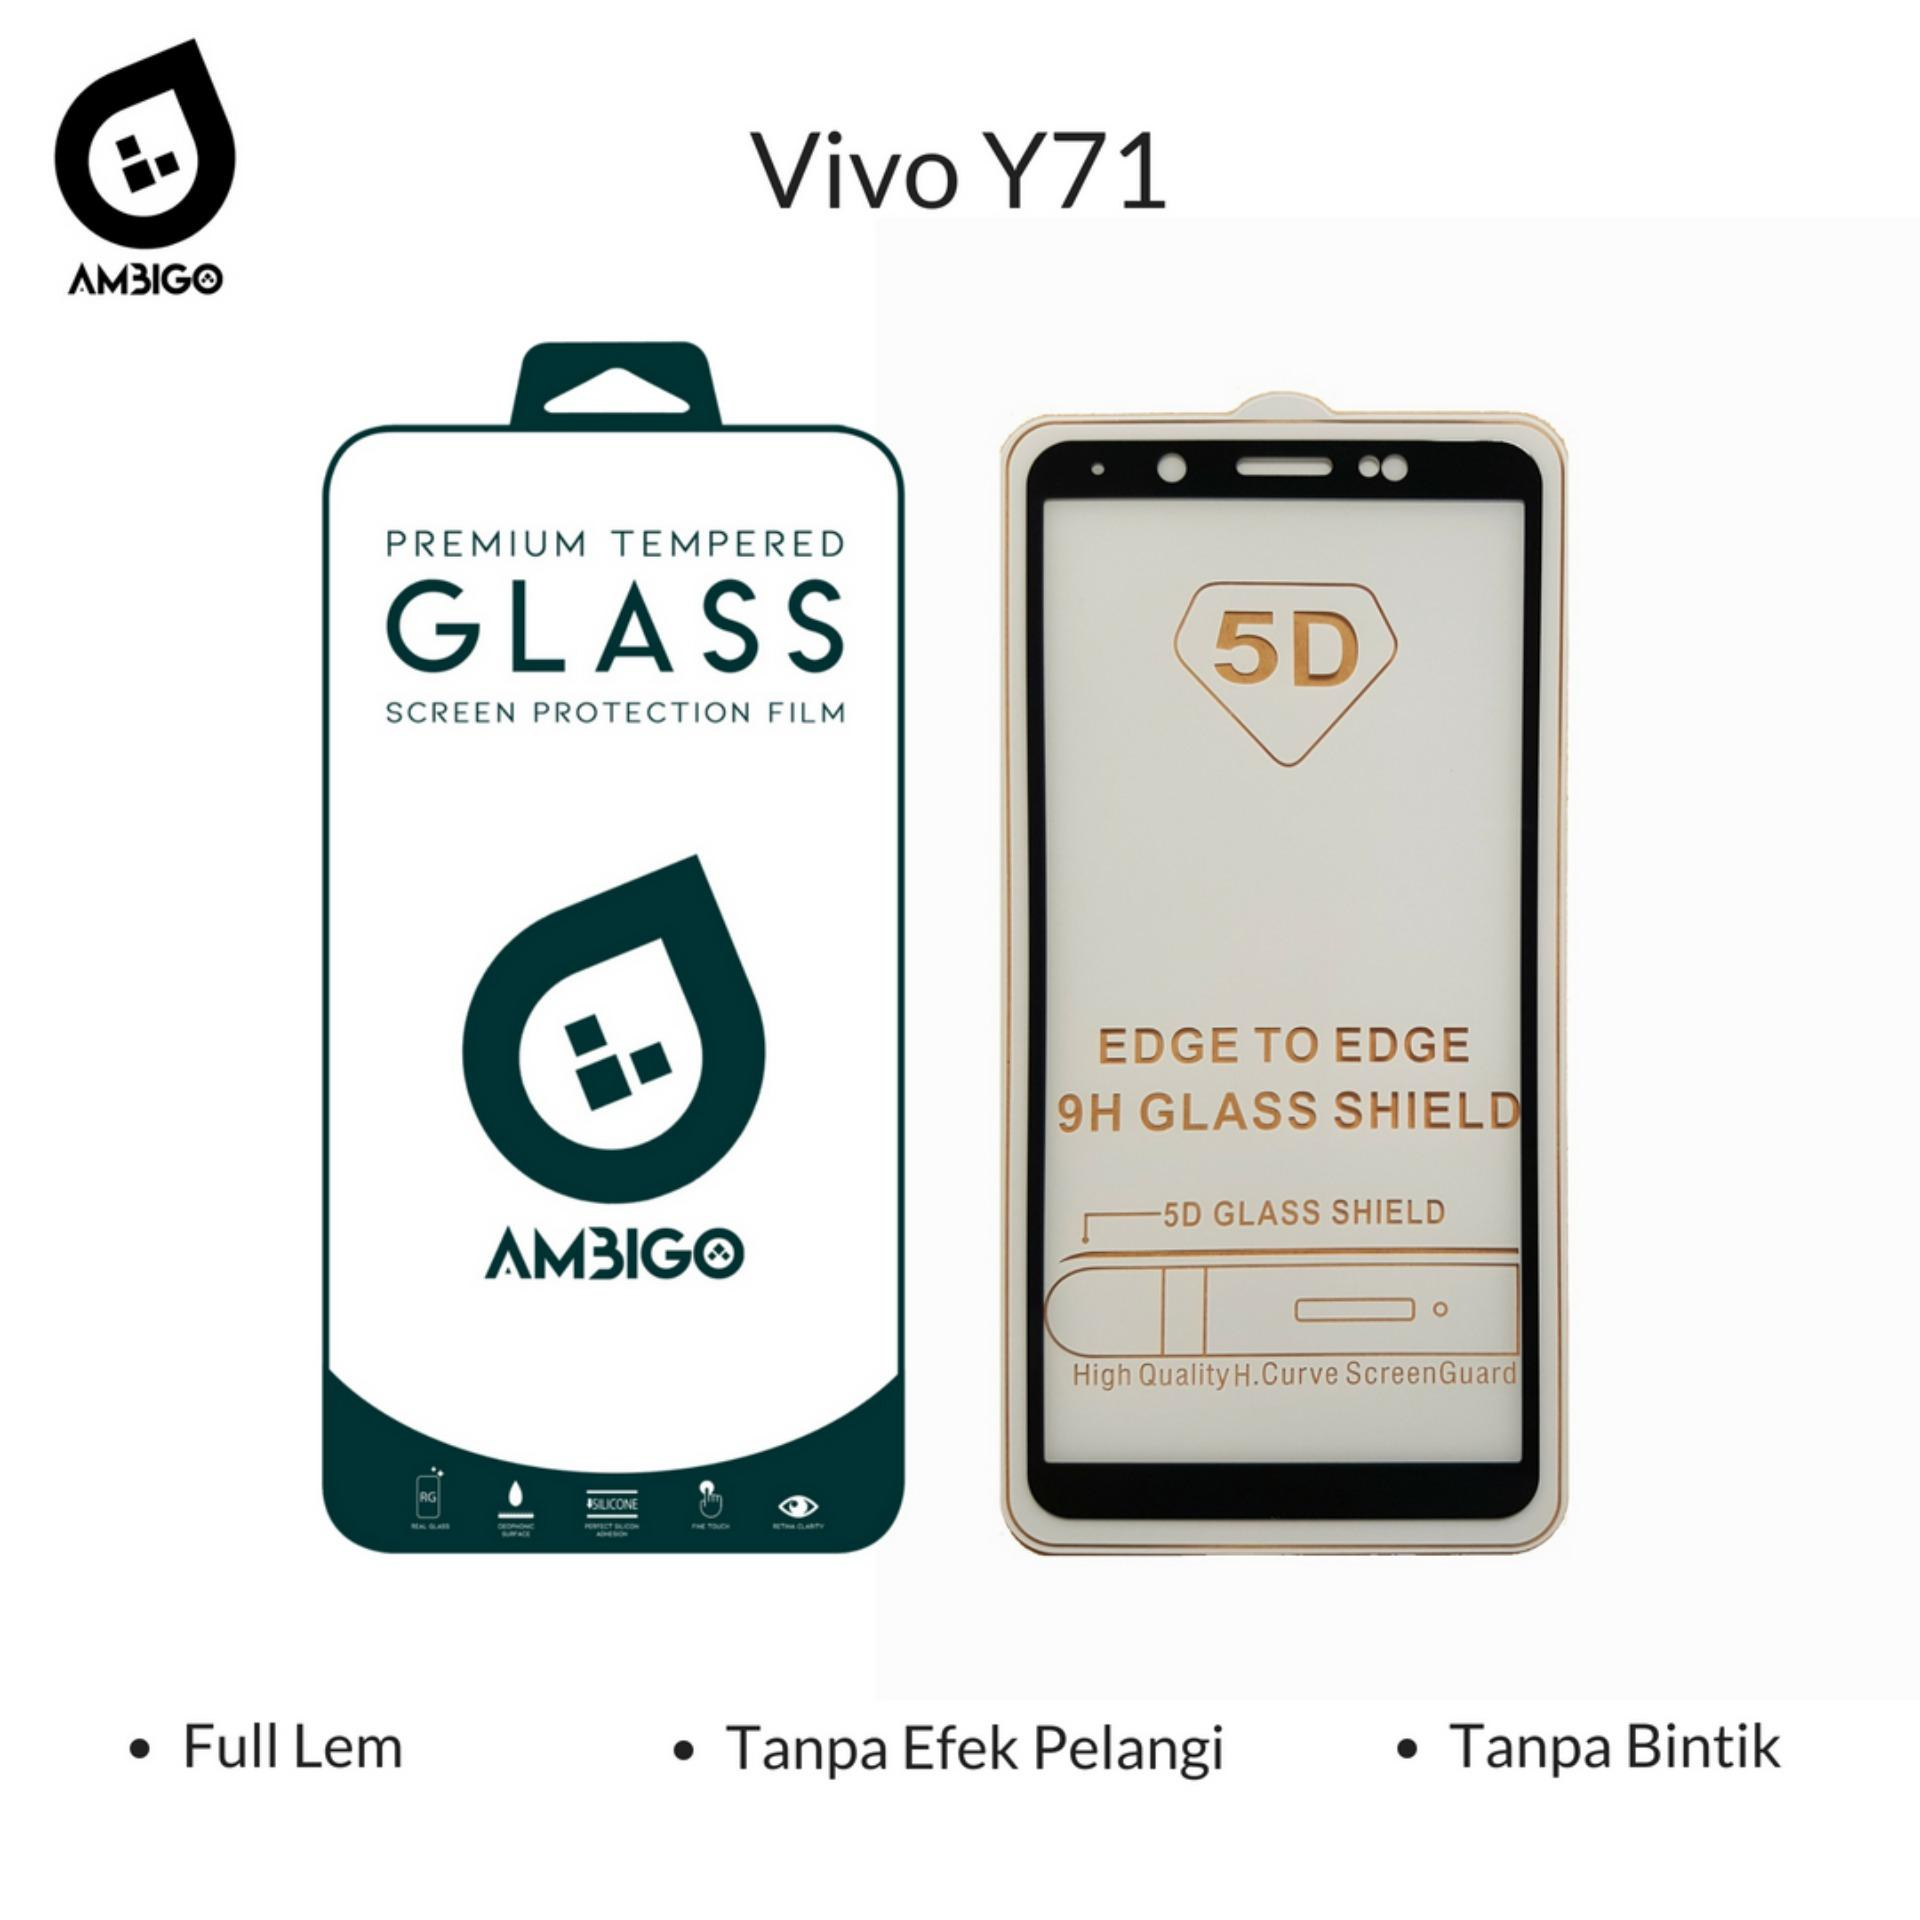 Pelindung Layar Handphone Tablet Log On Anti Shock Screen Protector Gores Iphone 7 Plus Depan Tempered Glass 5d Full Cover Warna Kaca Lem Untuk Vivo Y71